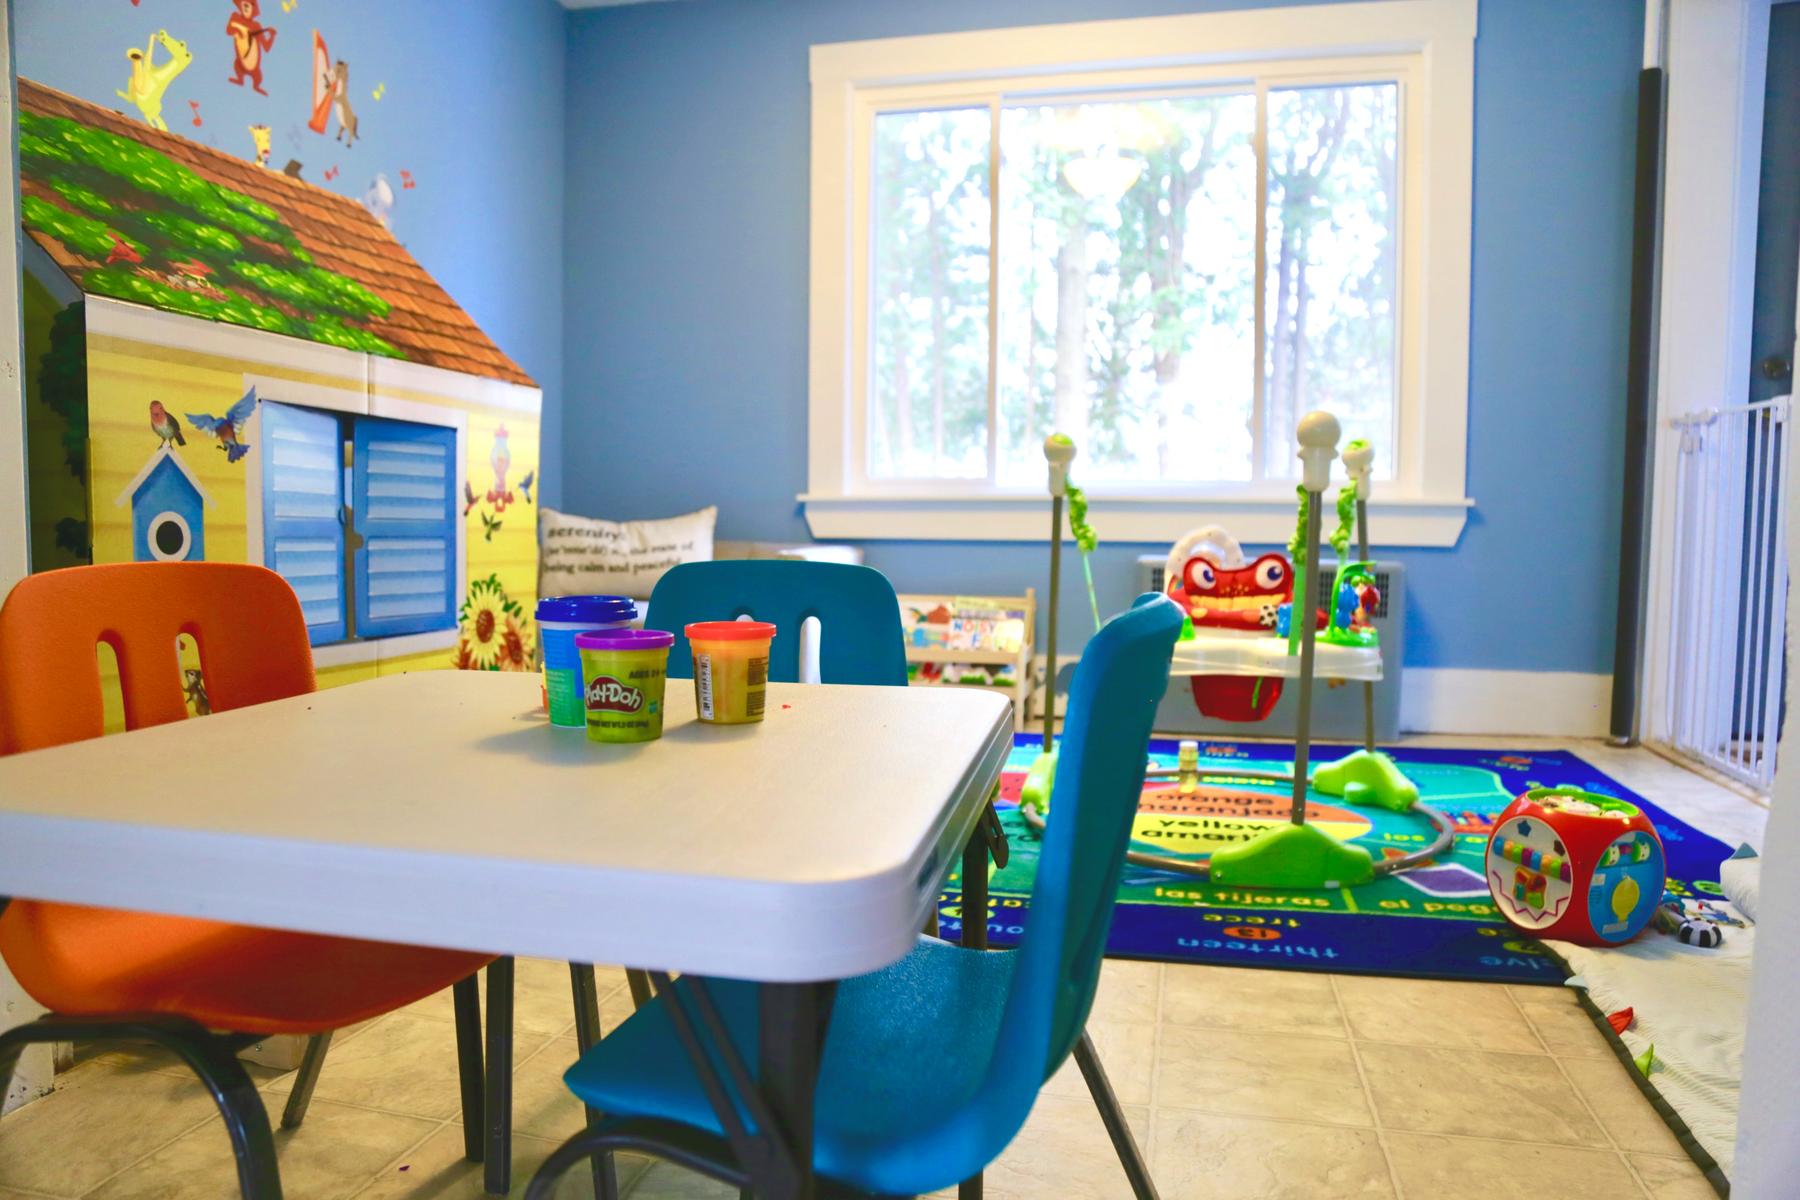 Patico Home Daycare, opening in Dedham